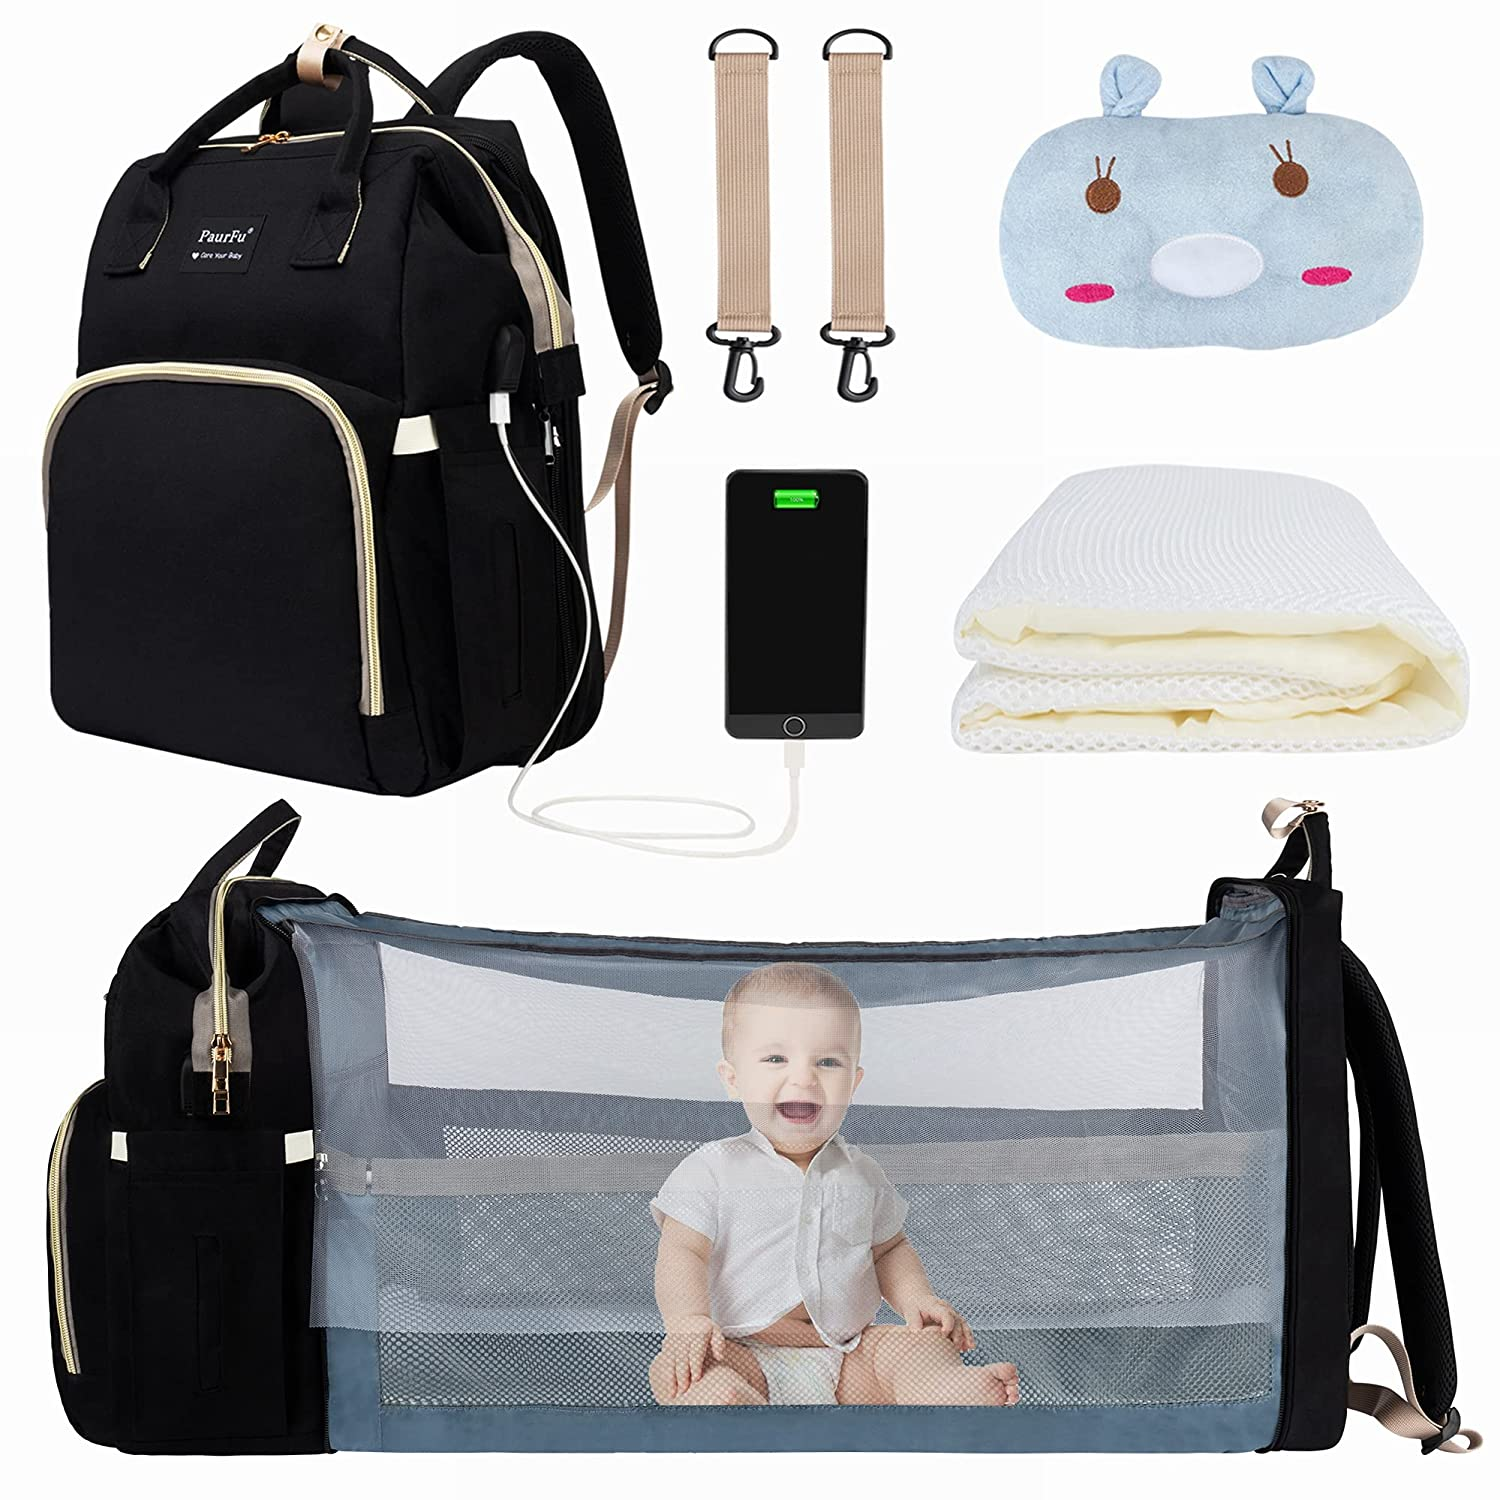 8 in 1 Diaper Bag with Changing Station, PaurFu Waterproof Diaper Baby Bag for Boy Girl, with Foldable Bassinet Bed, Unique Mosquito Net Sunshade,Soft Baby Pillow and USB Charge Port etc (Black)